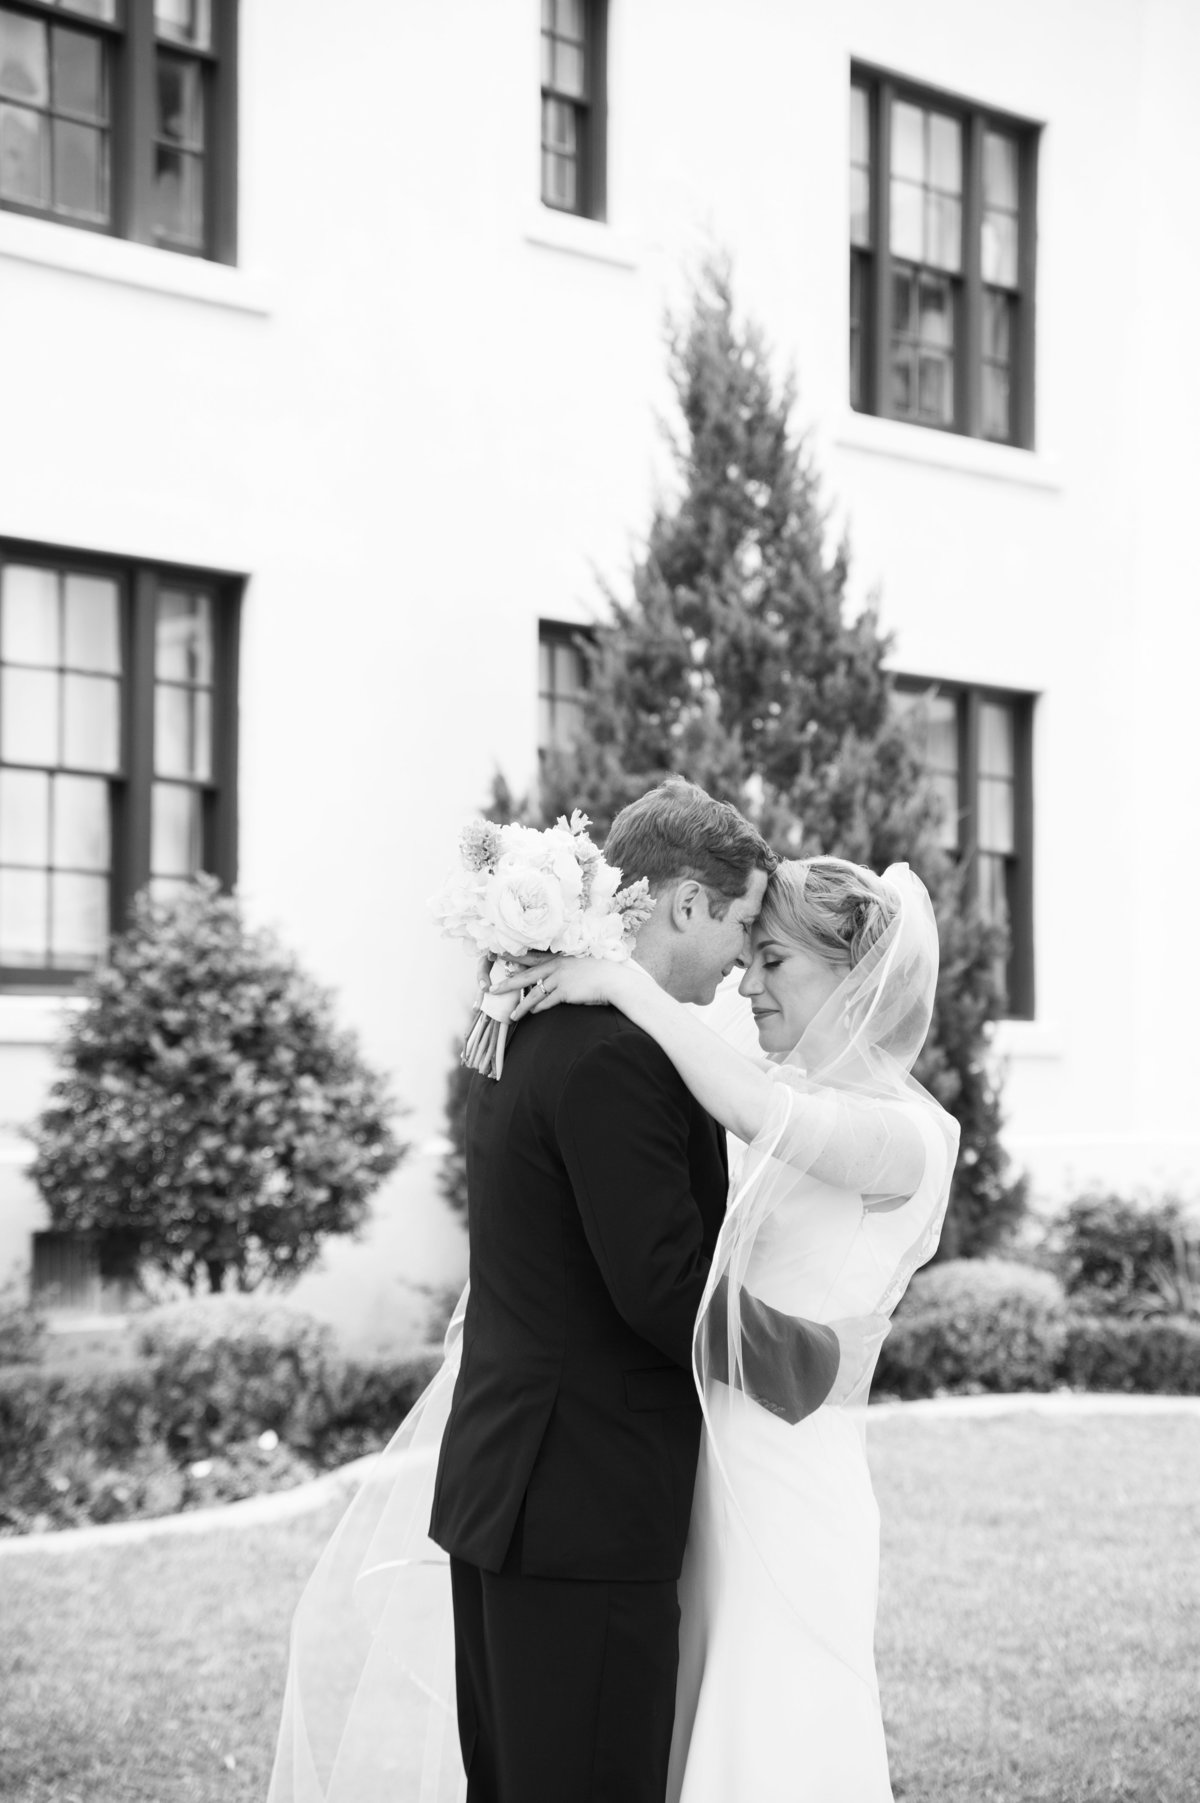 Romantic moment with bride and groom at the white house hotel in biloxi while bride holds bouquet and wears cathedral veil